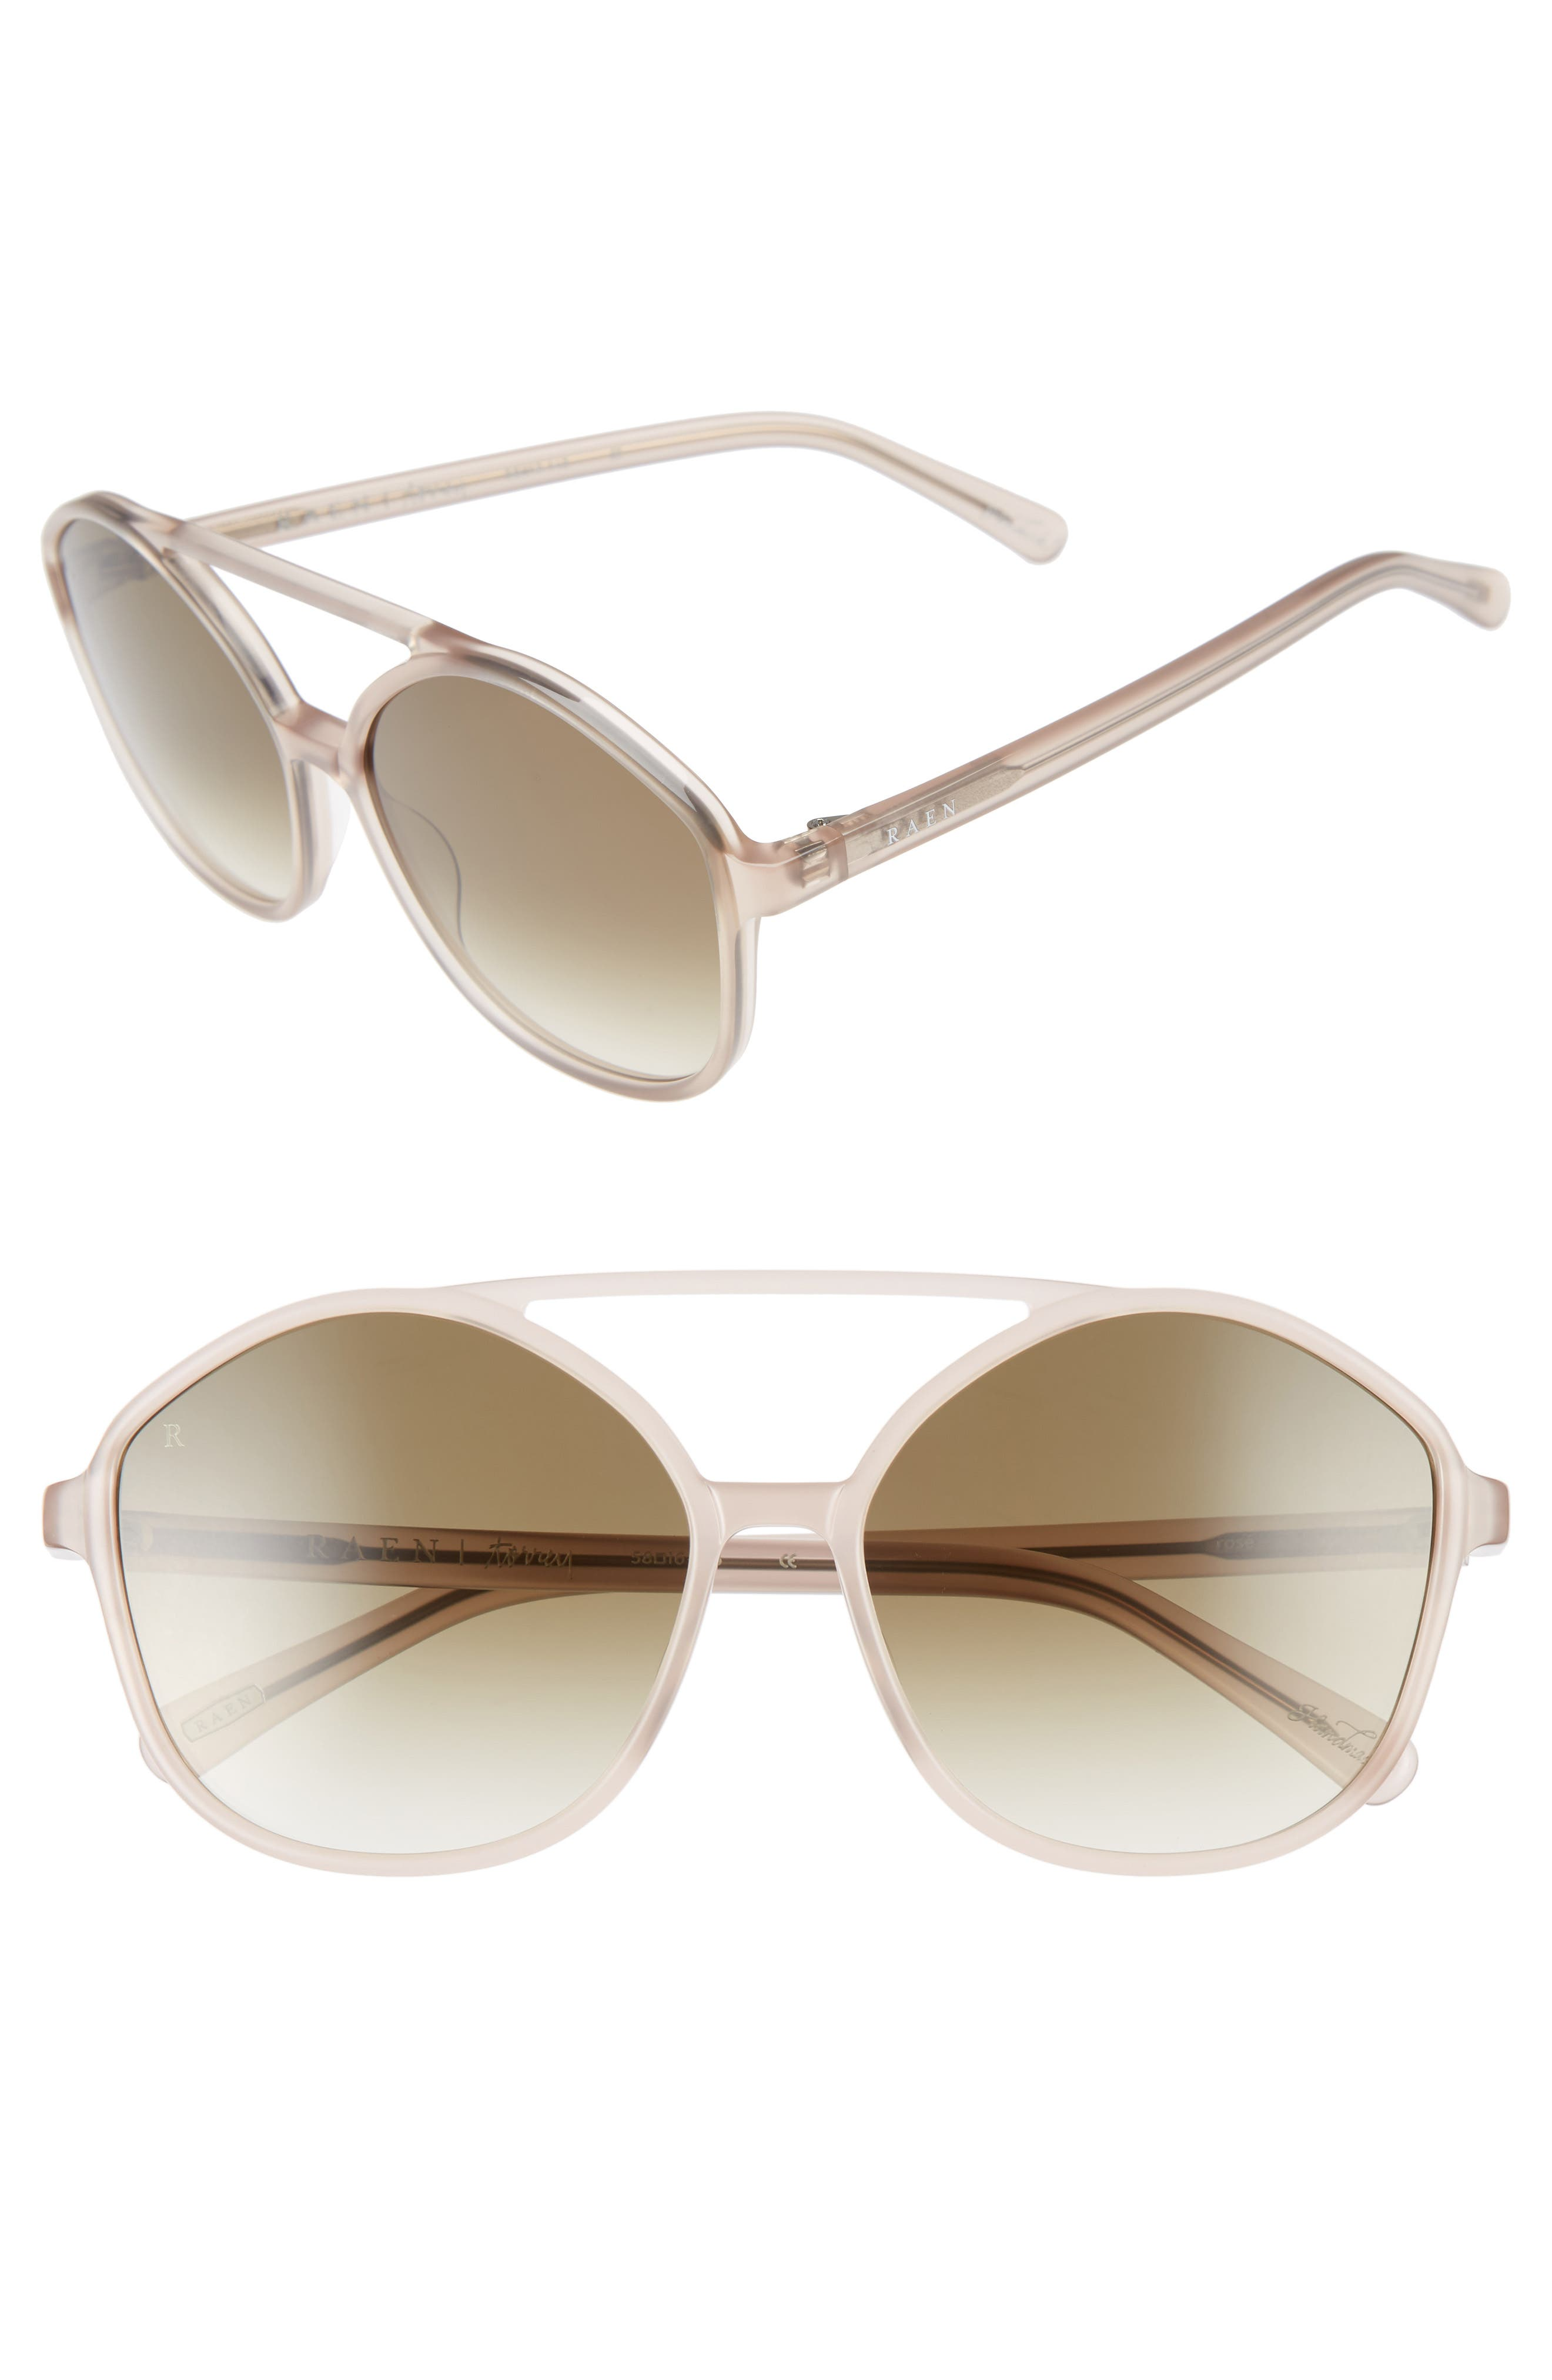 RAEN,                             Torrey 58mm Aviator Sunglasses,                             Main thumbnail 1, color,                             FLESH